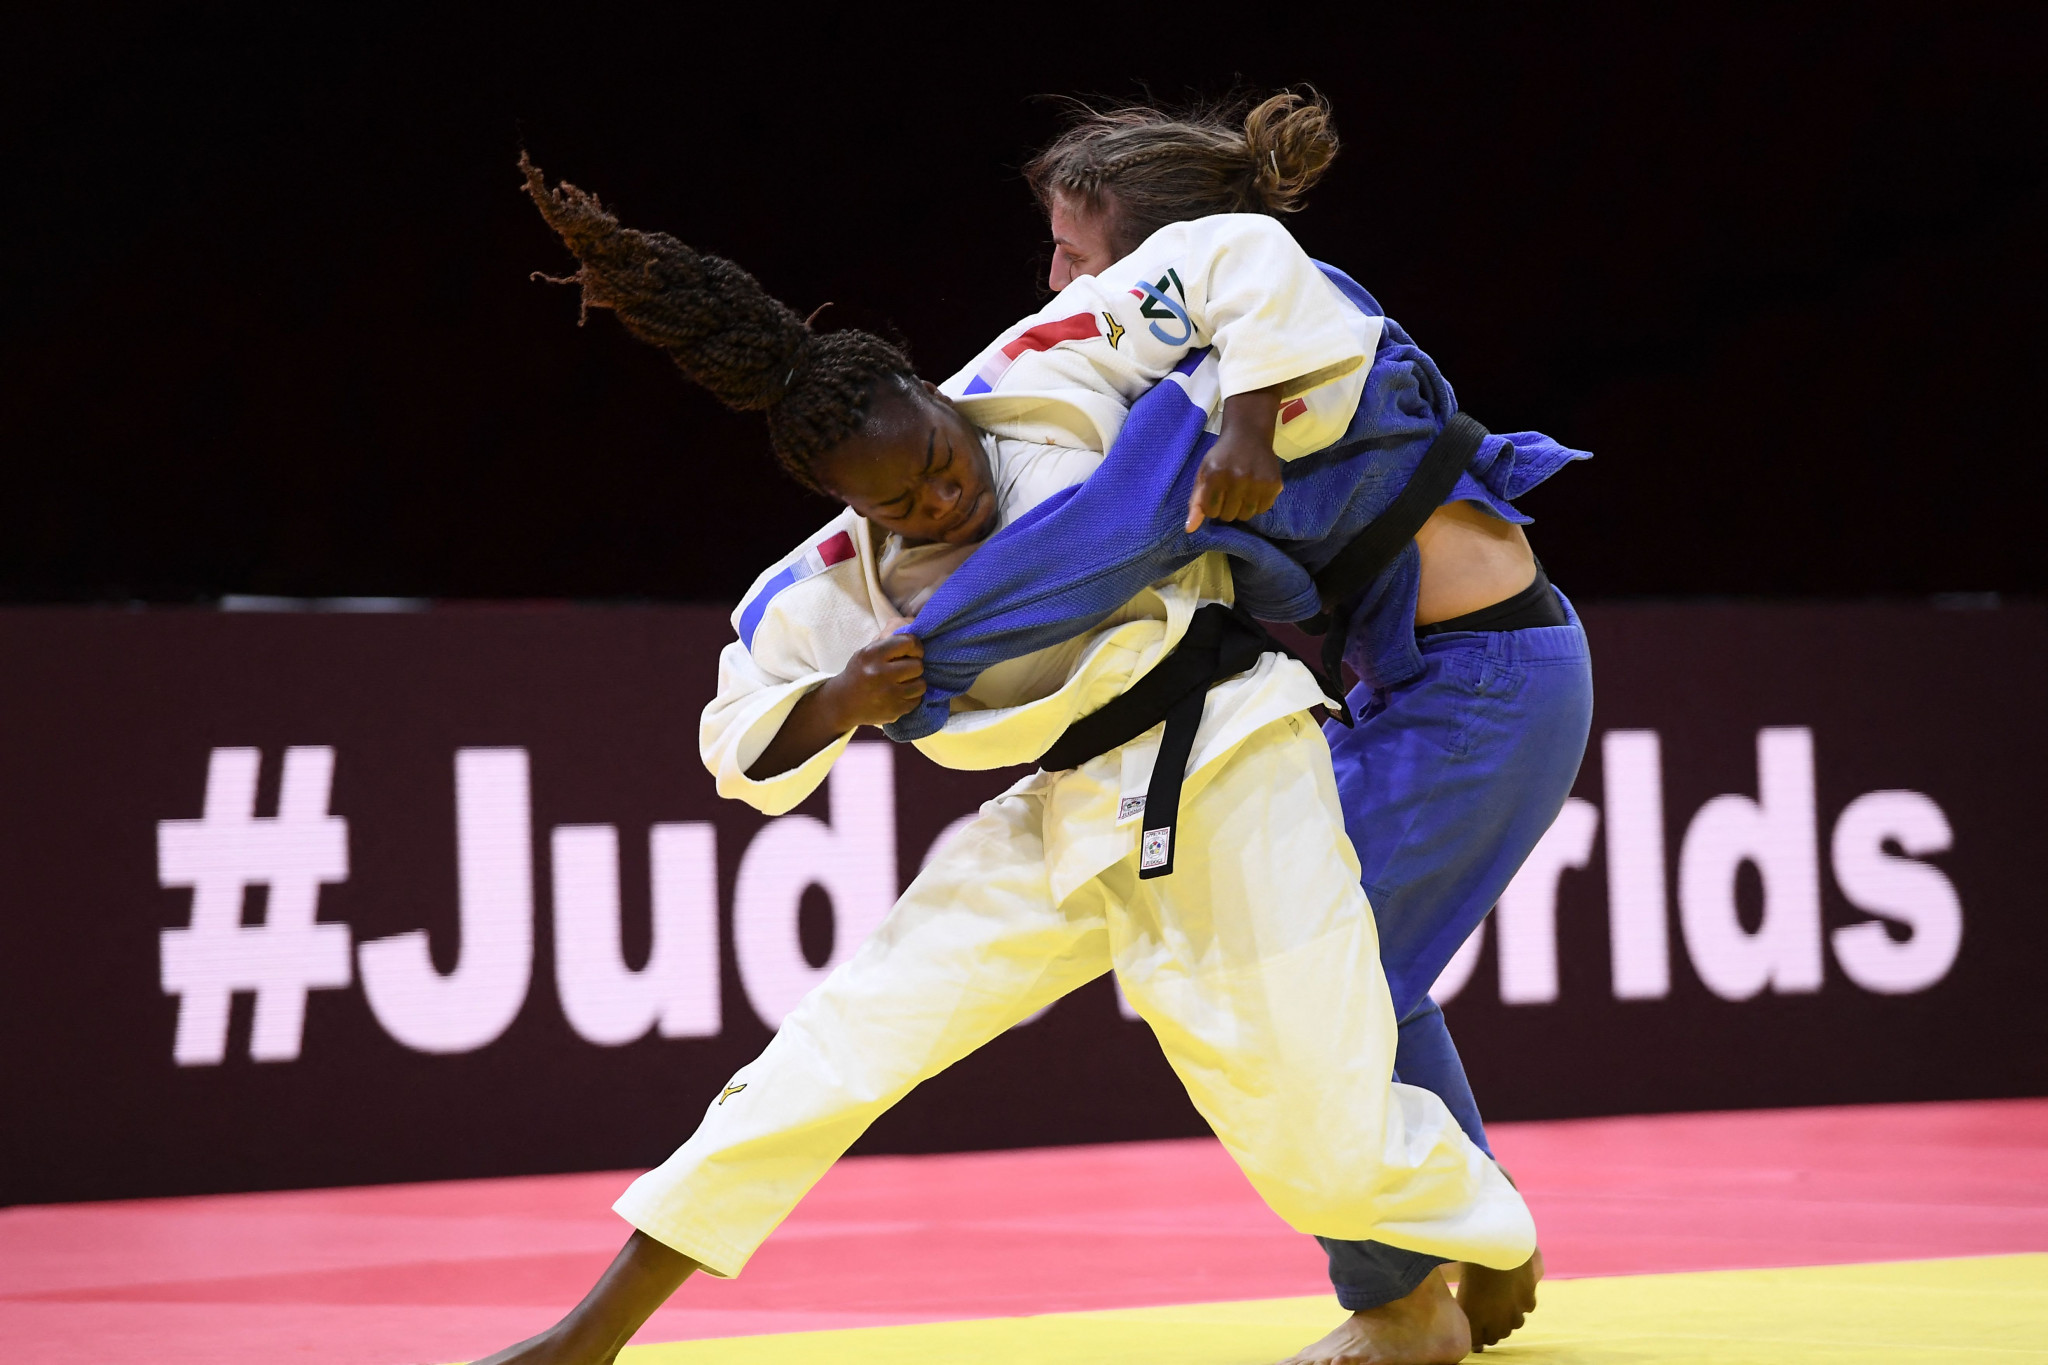 Clarisse Agbegnenou claimed victory over Andreja Leški with an ippon - her fifth of the tournament ©Getty Images